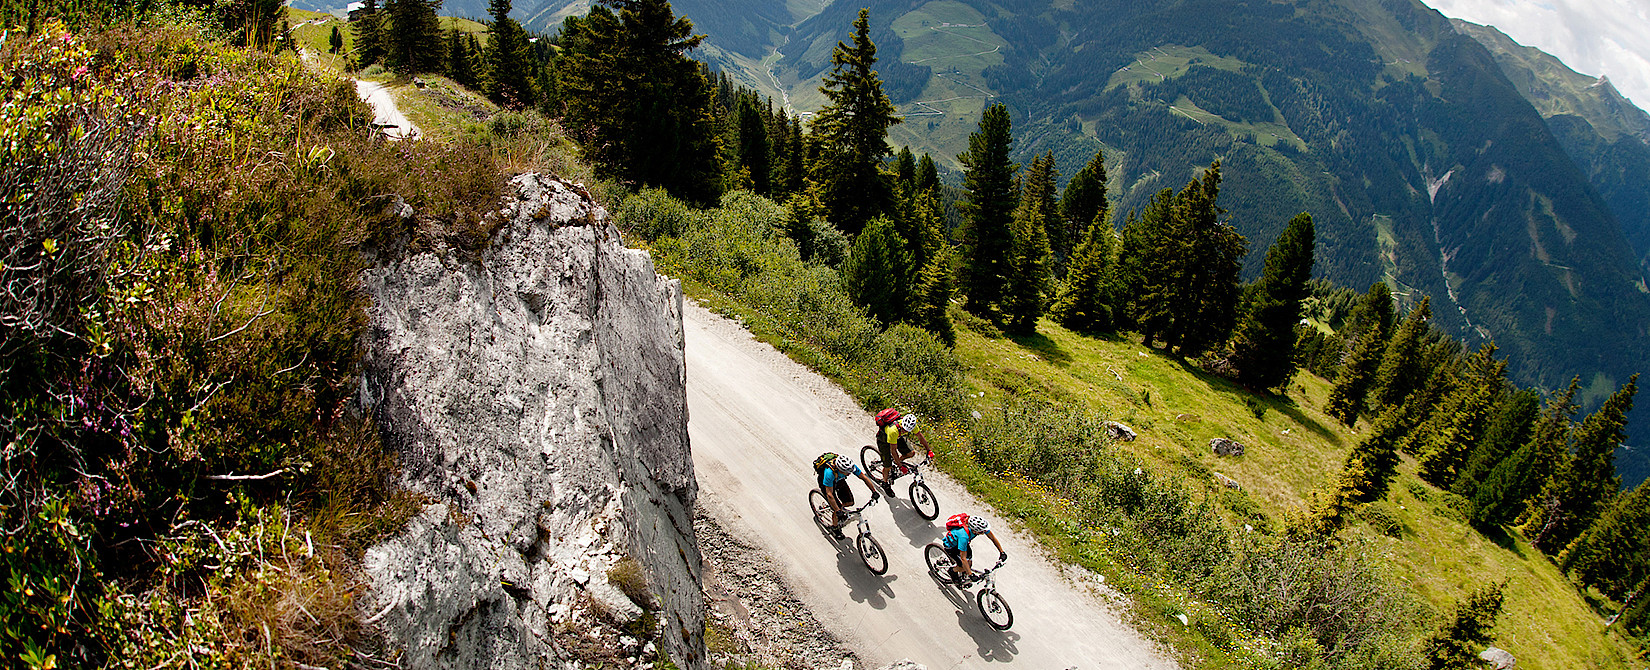 Biking holiday in the Zillertal Valley